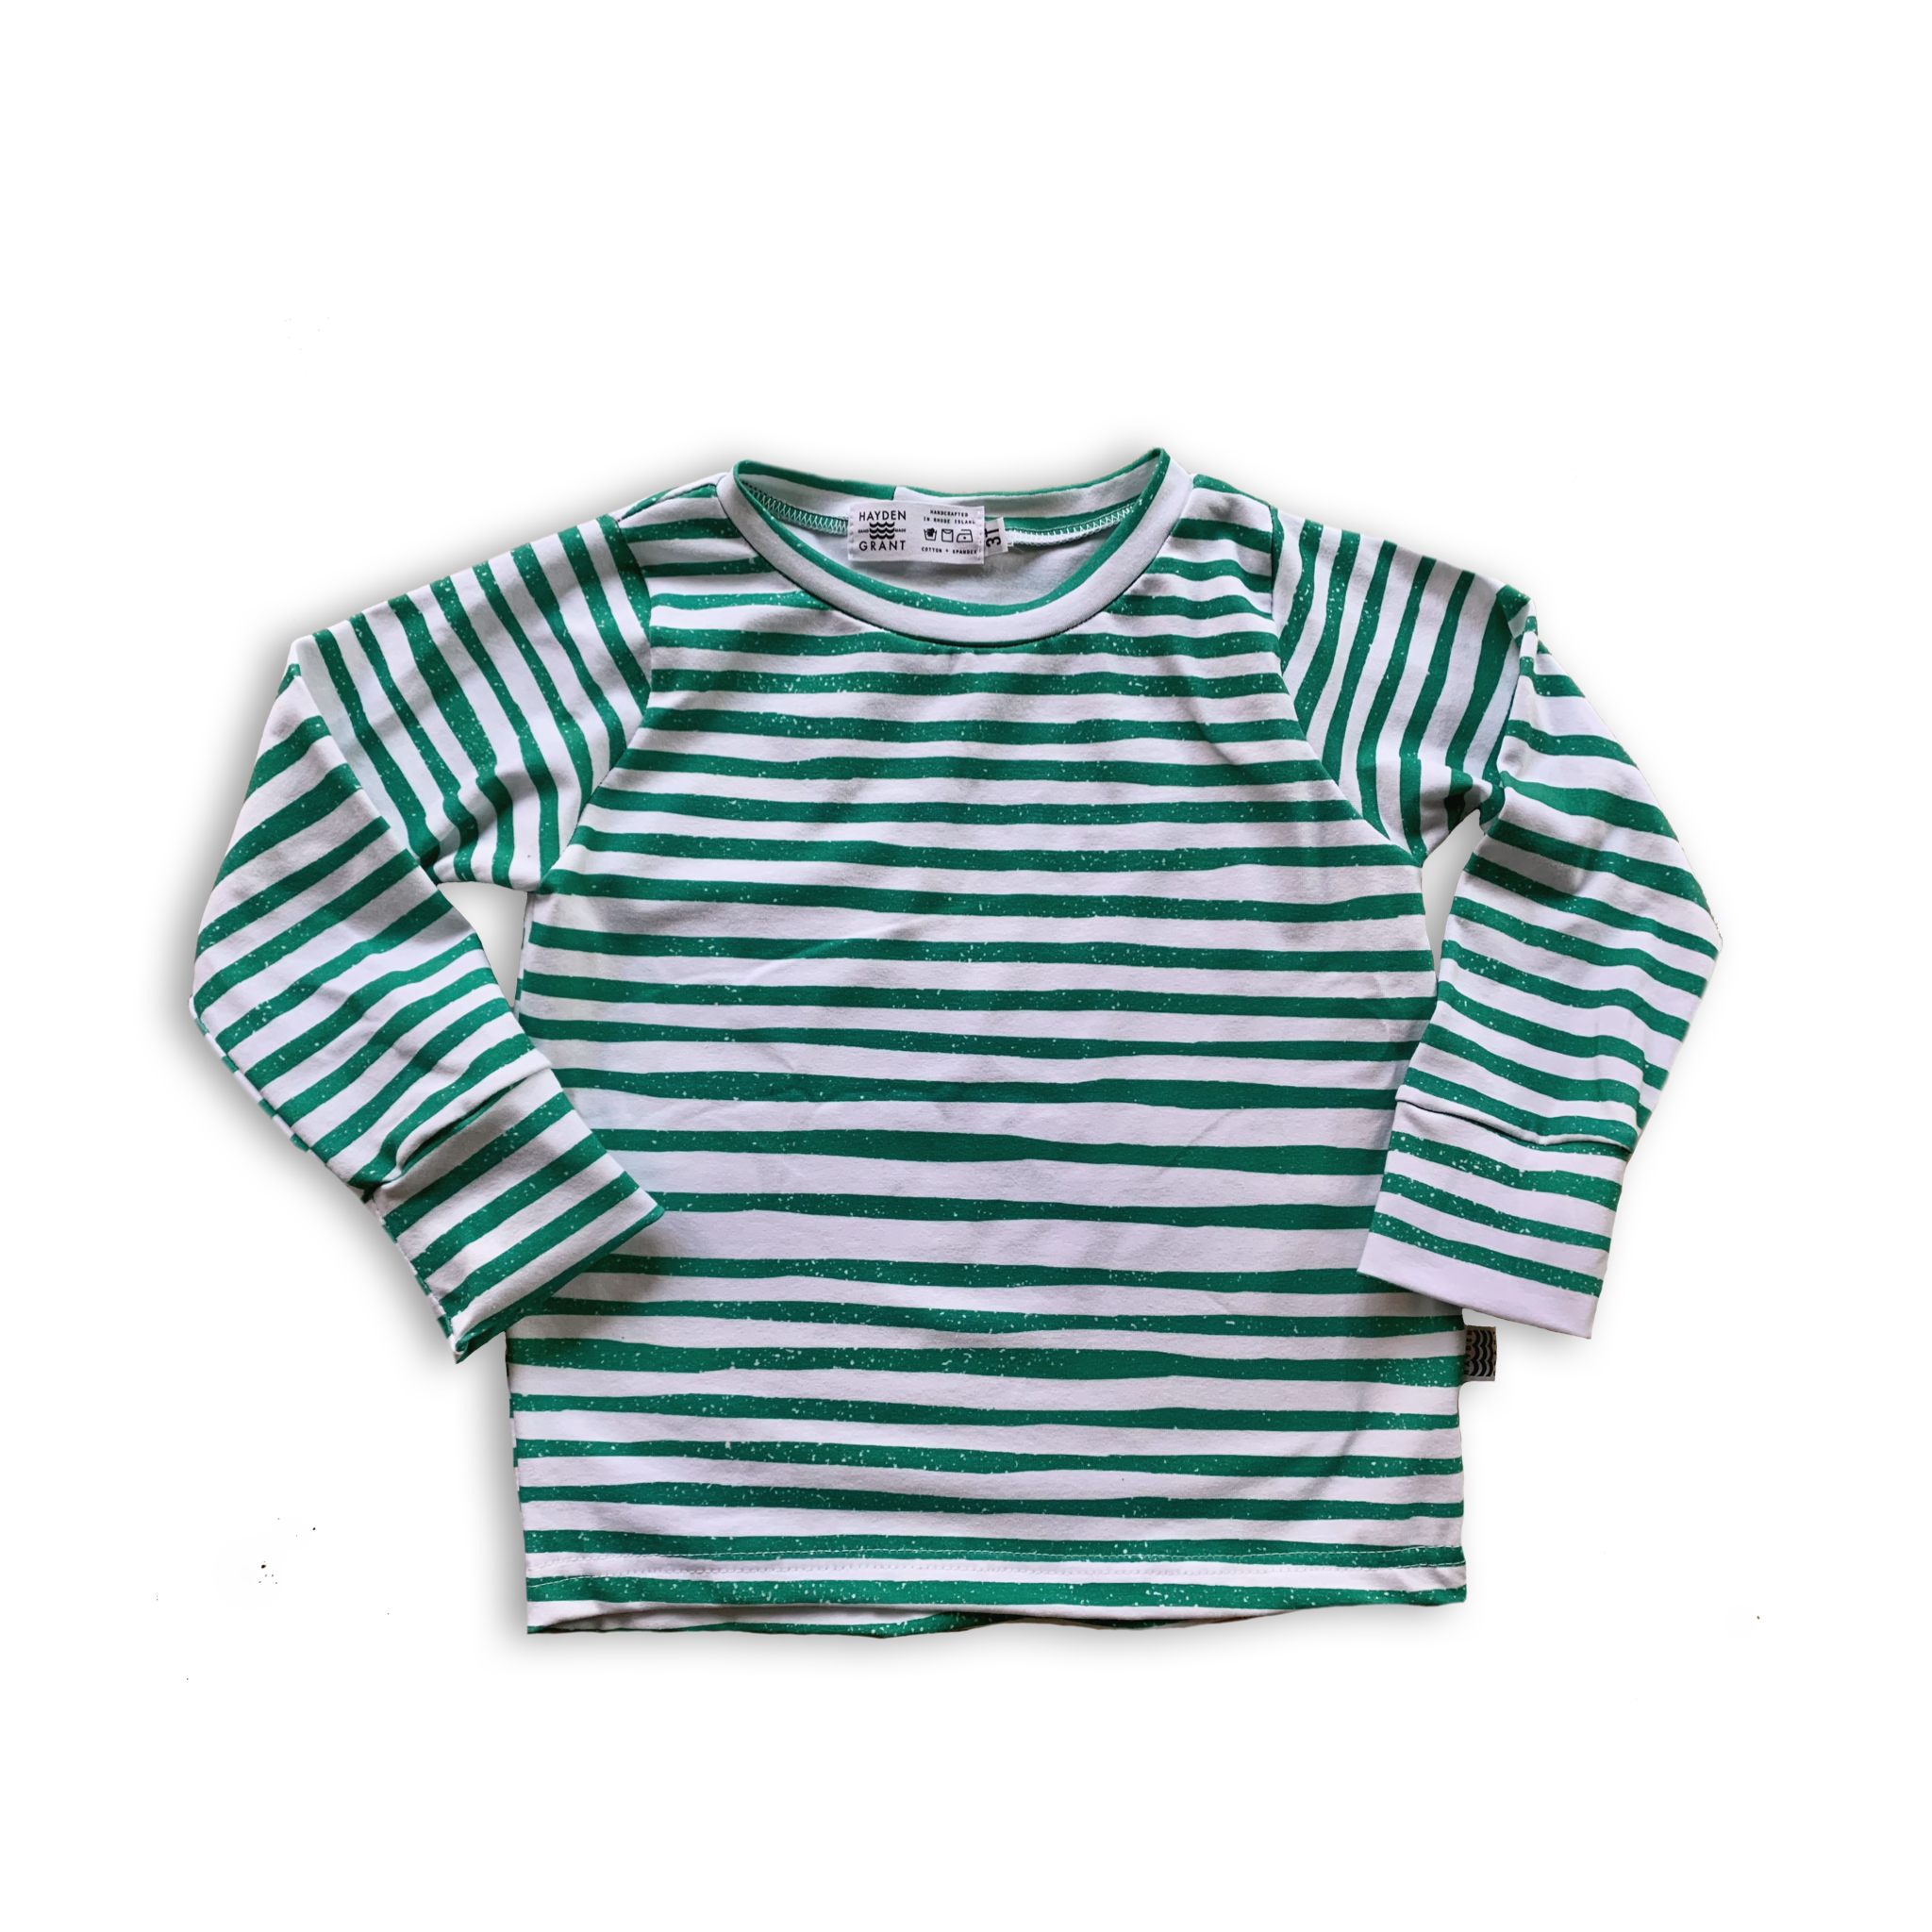 Crew Neck Pullover in Spruce Pine Stripe